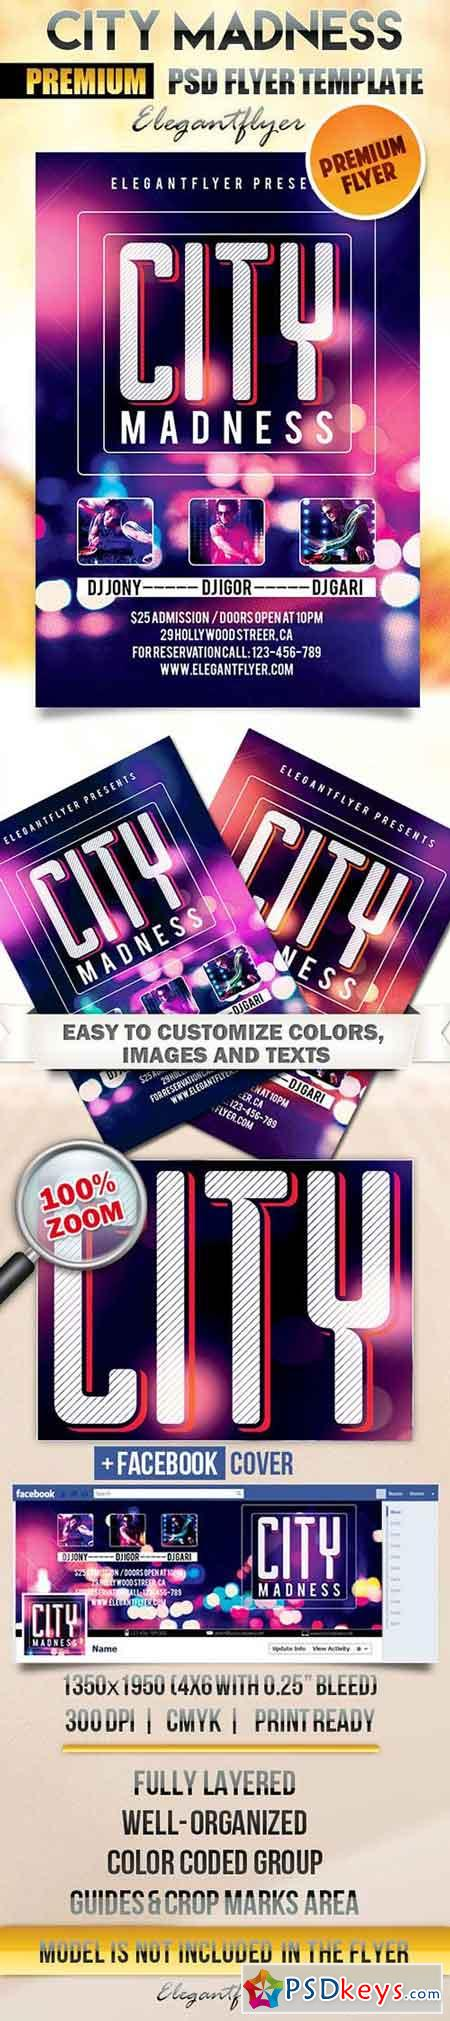 City Madness Flyer PSD Template + Facebook Cover